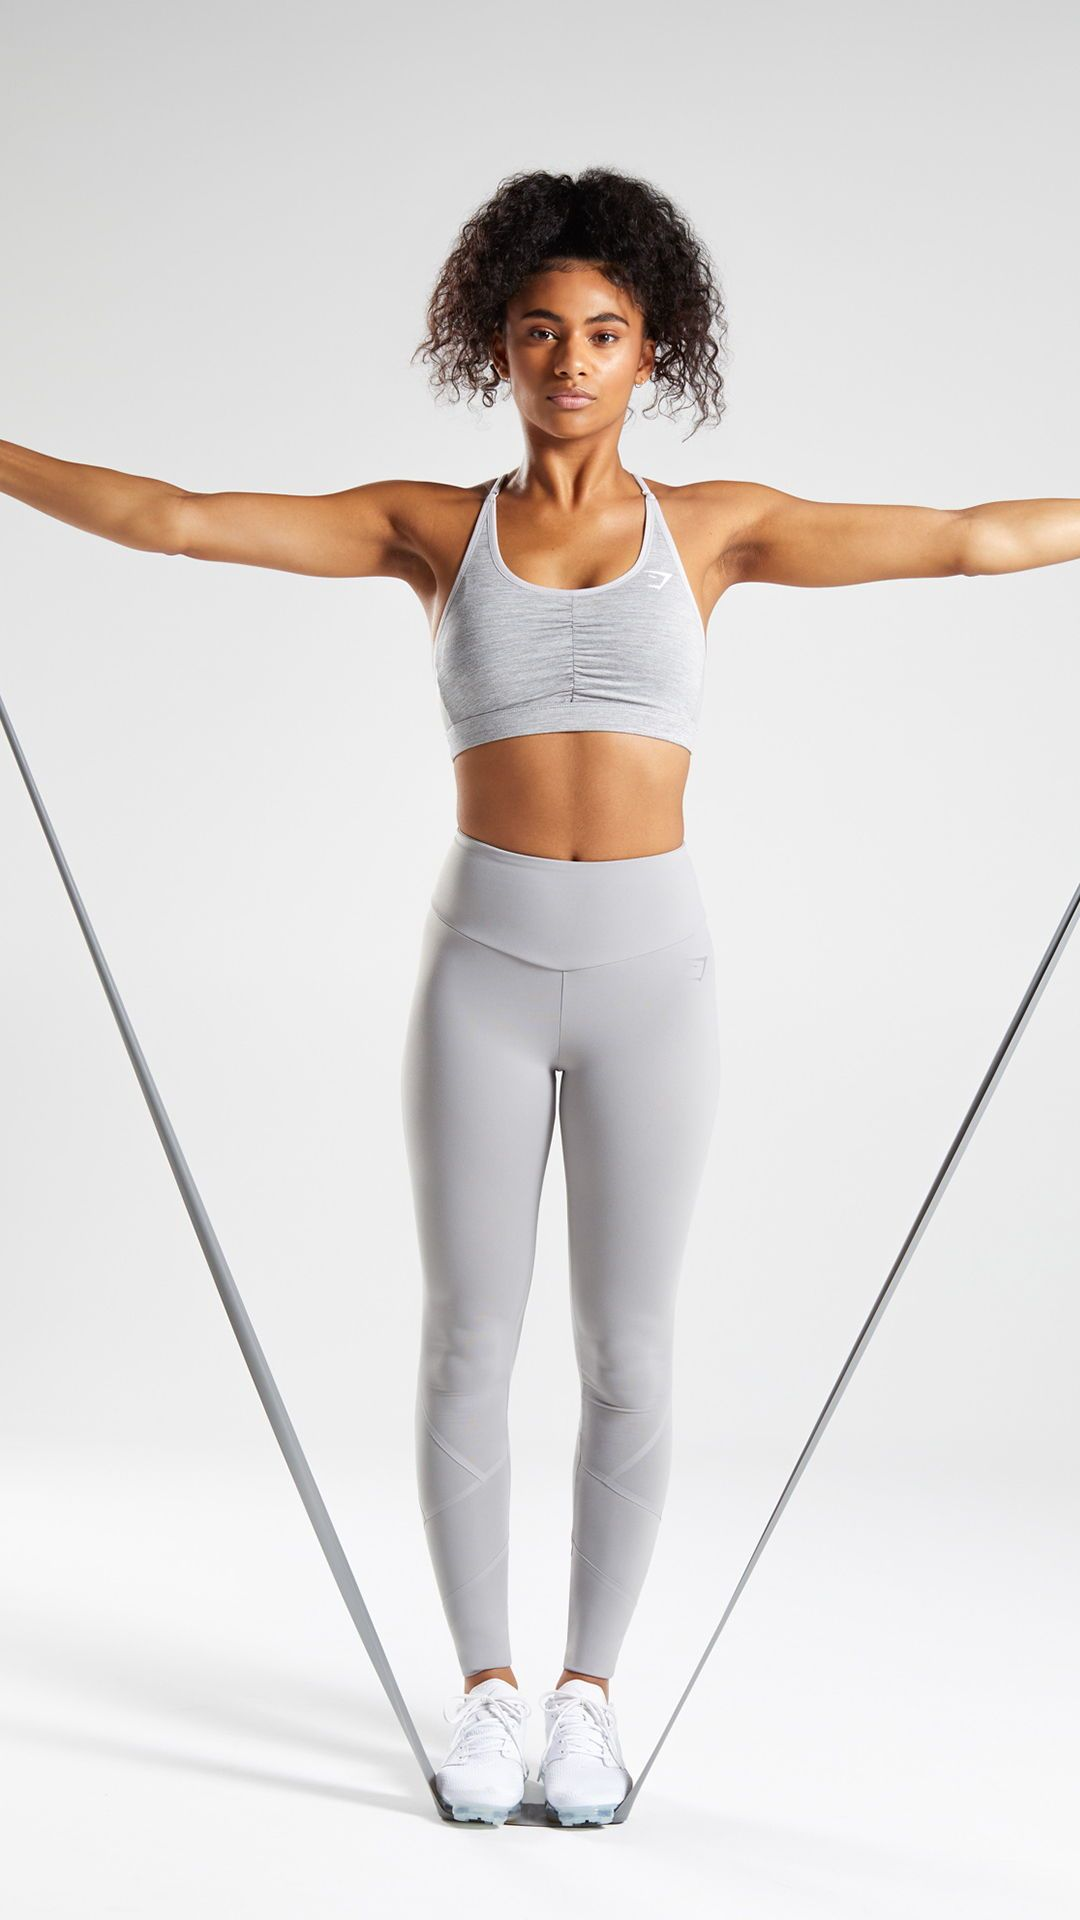 c6a1790c3de7e Fused Ankle Legging - Light Grey. Both striking and physique accentuating